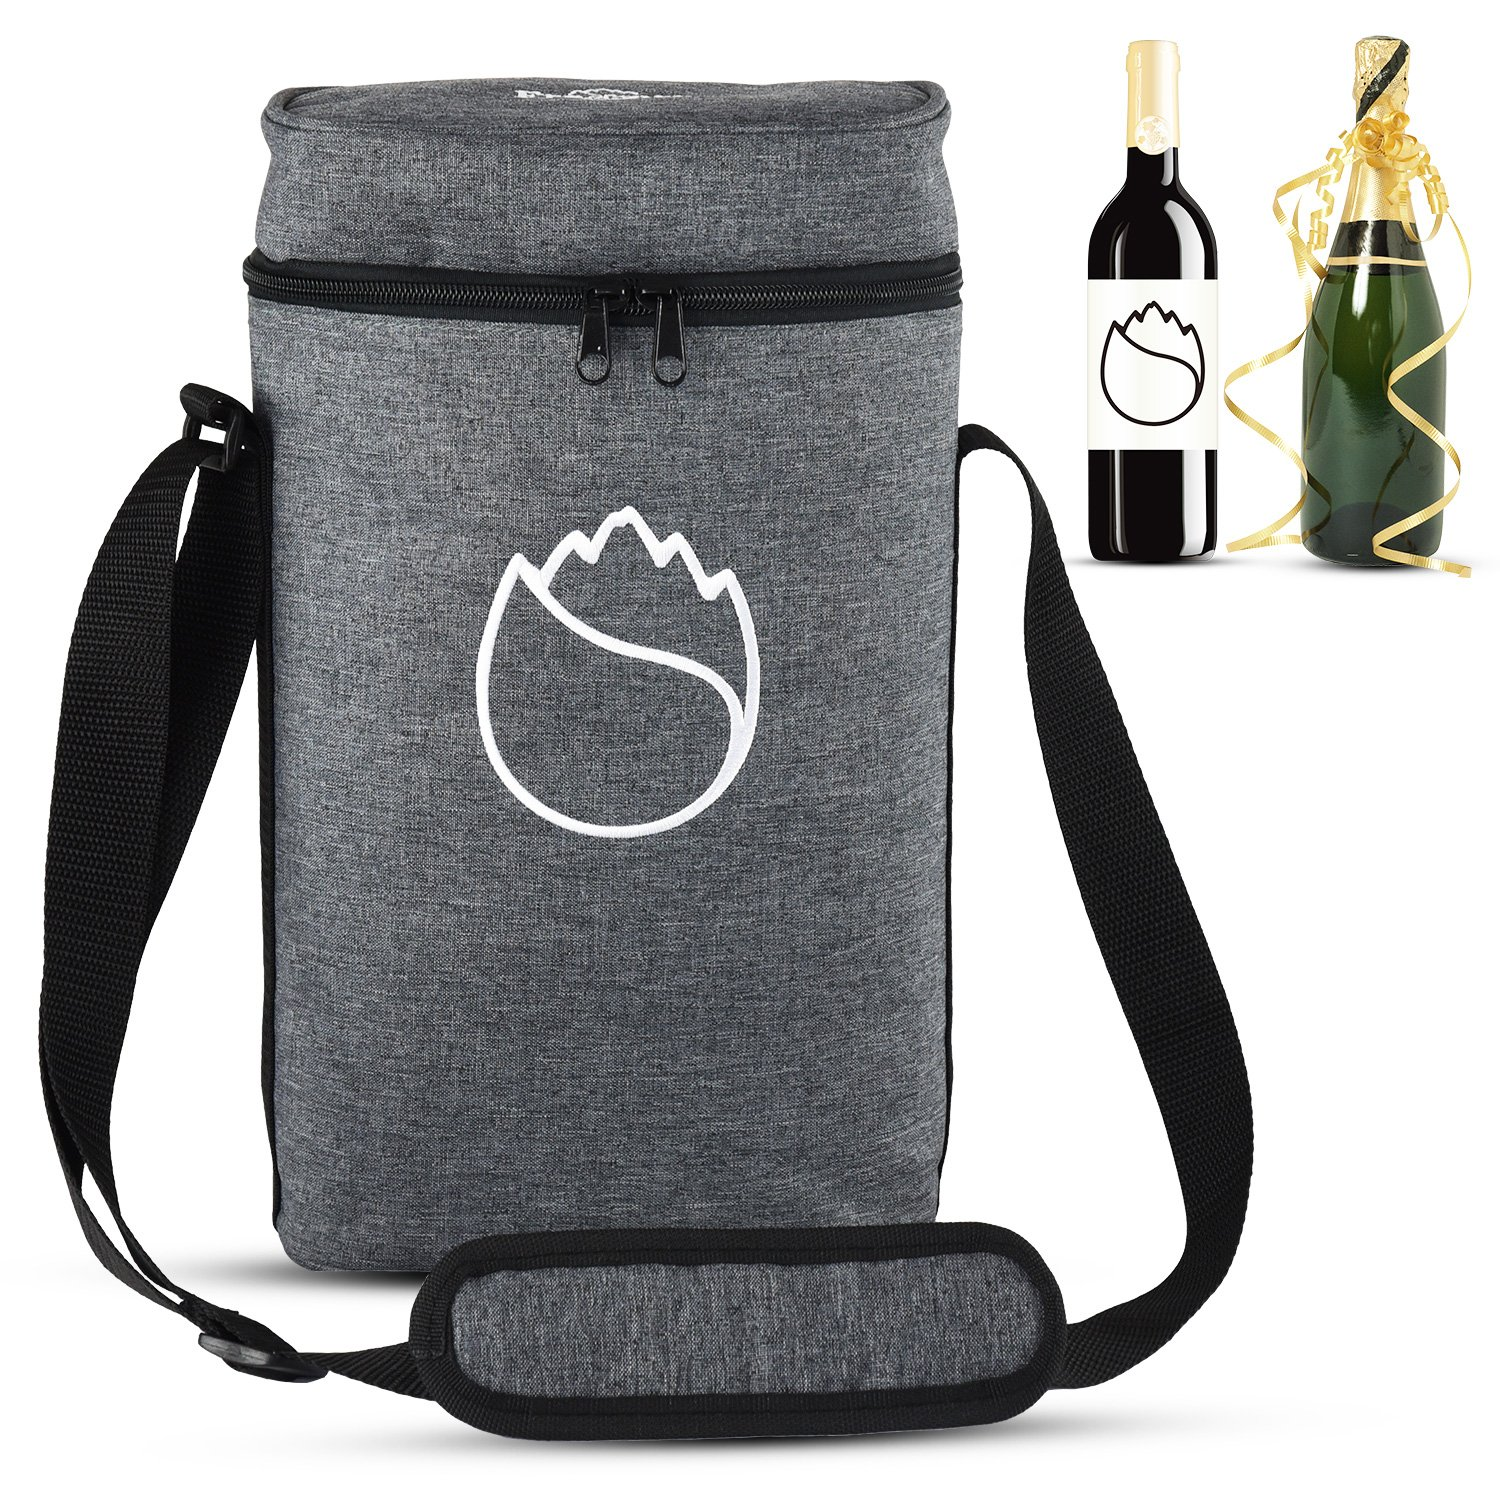 Freshore 2 Bottle Wine Set Insulated Bag As Gift Firmly Store Two Corkscrew And Cheese - Fashionable Design For Cooler Restaurant With Adjustable Strap (Classical Gray)